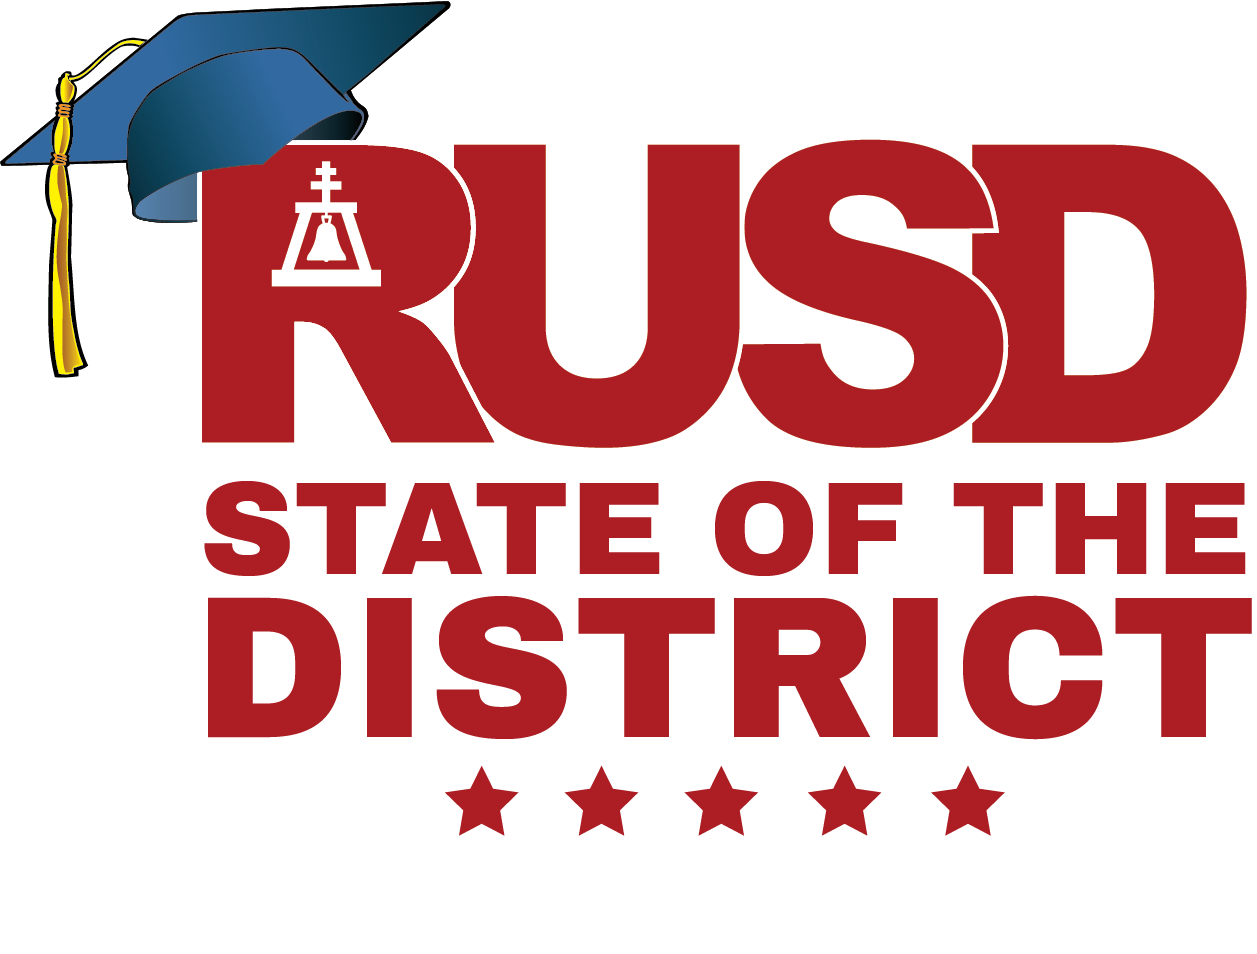 School board meeting clipart banner free stock State of the District Scholarship - Riverside Unified School District banner free stock